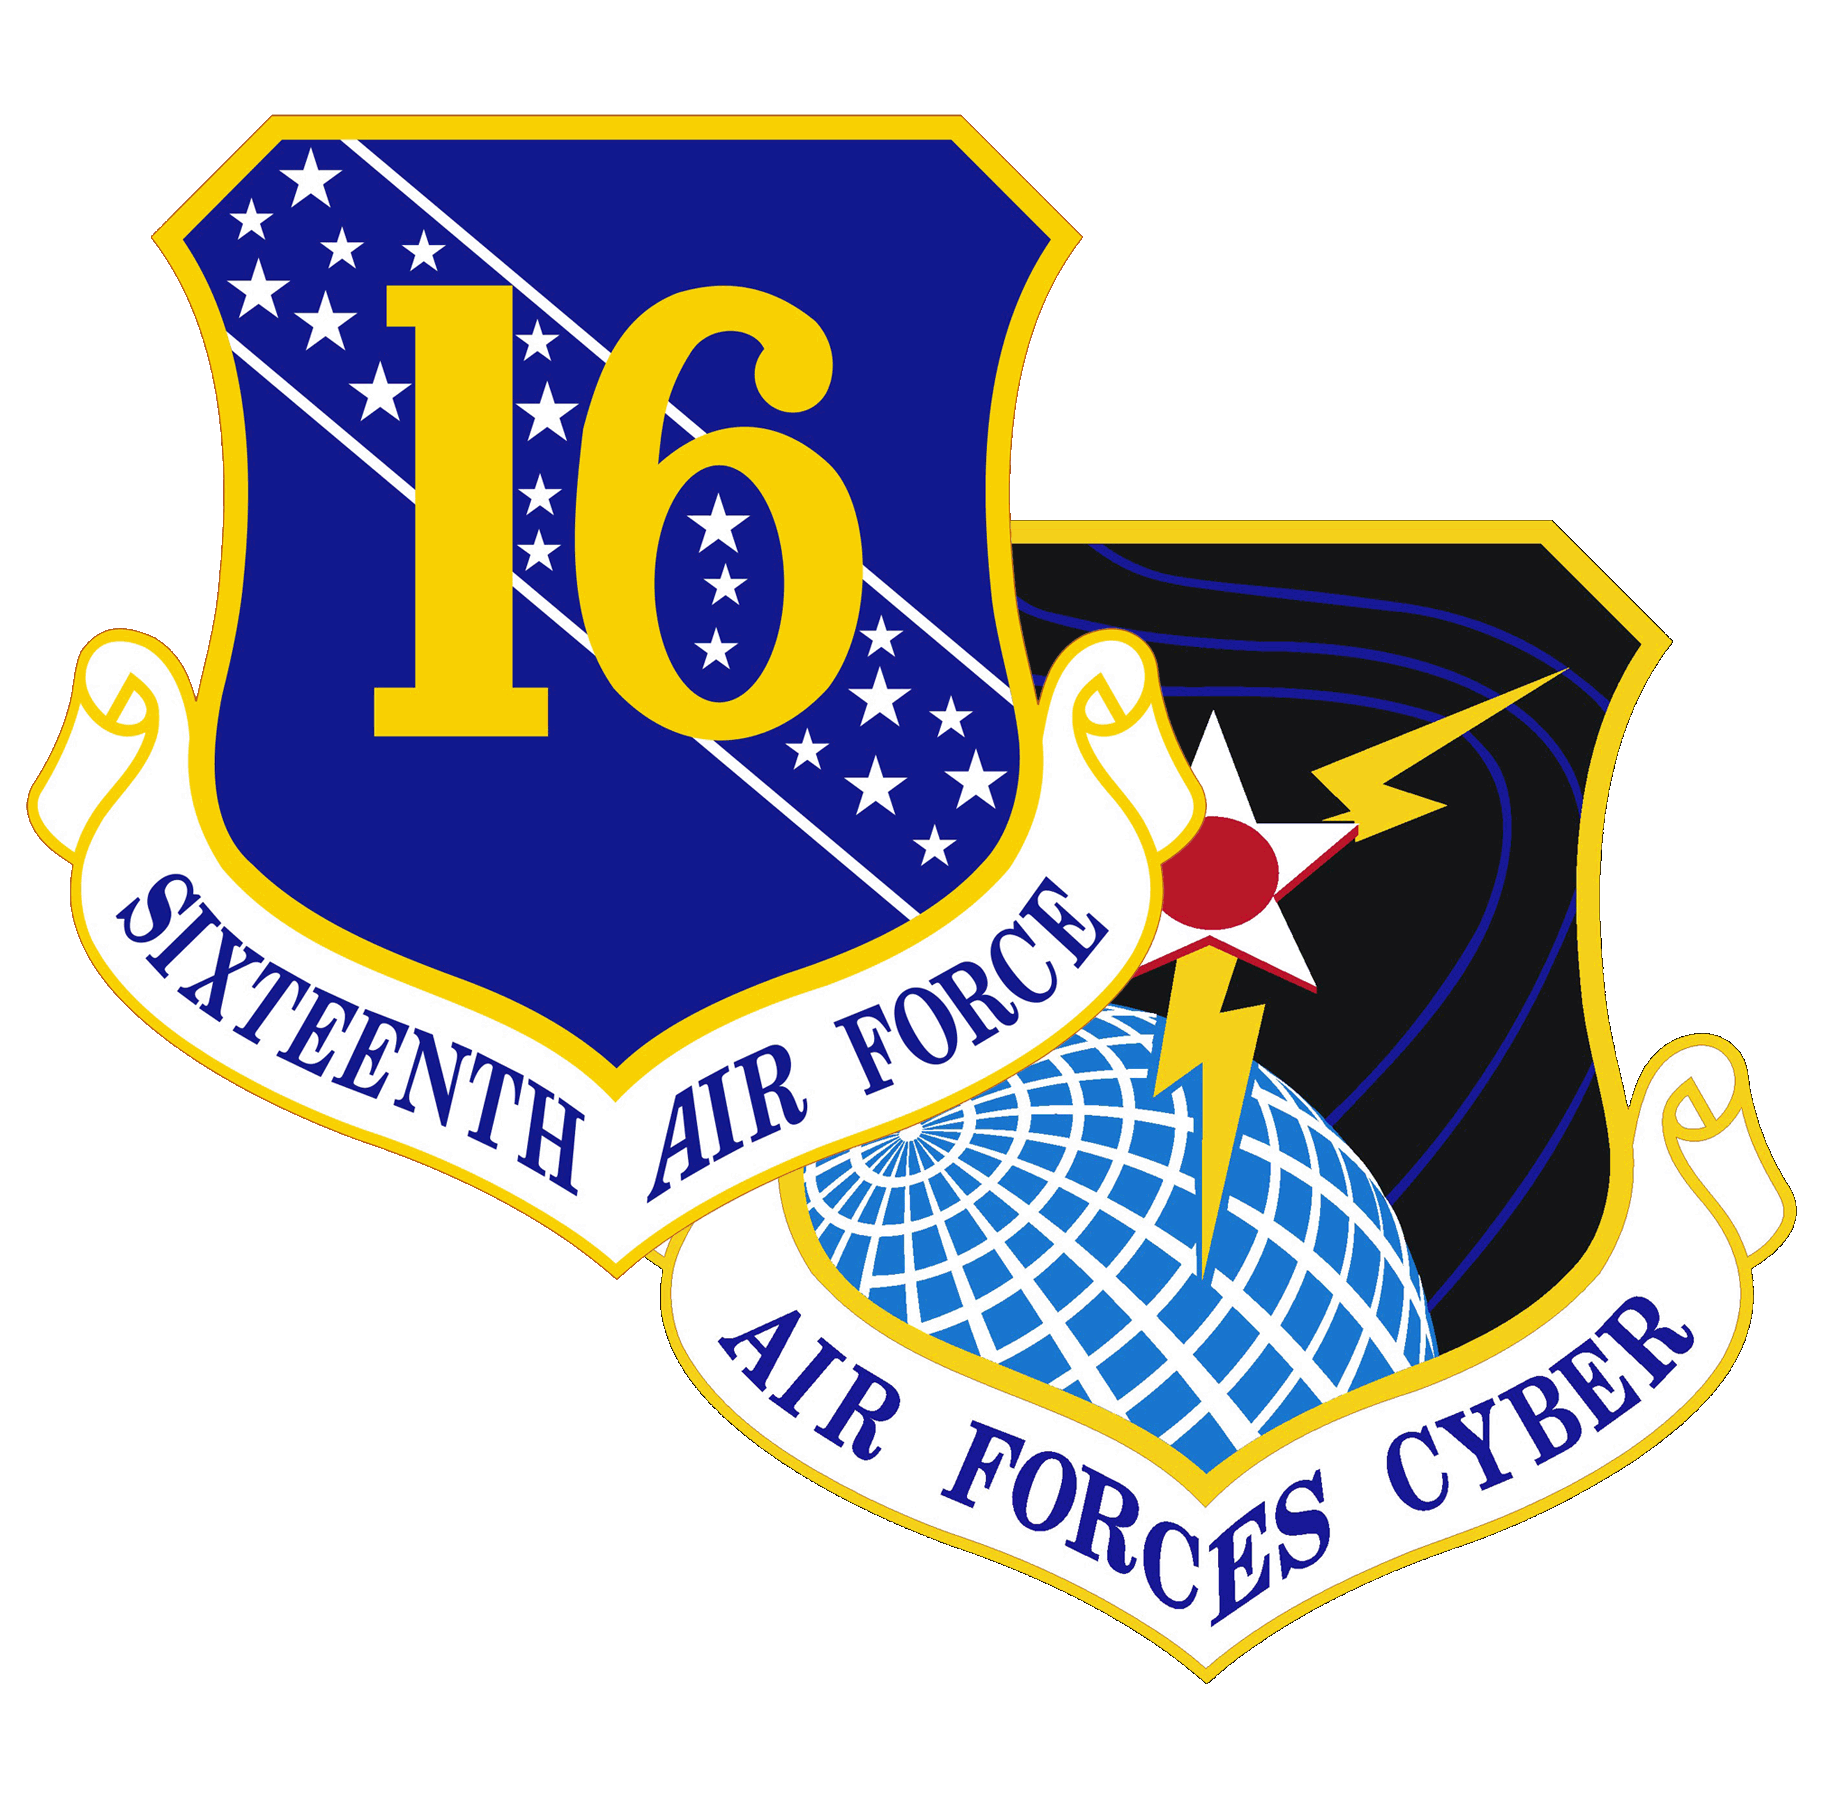 Sixteenth Air Force (Air Forces Cyber)